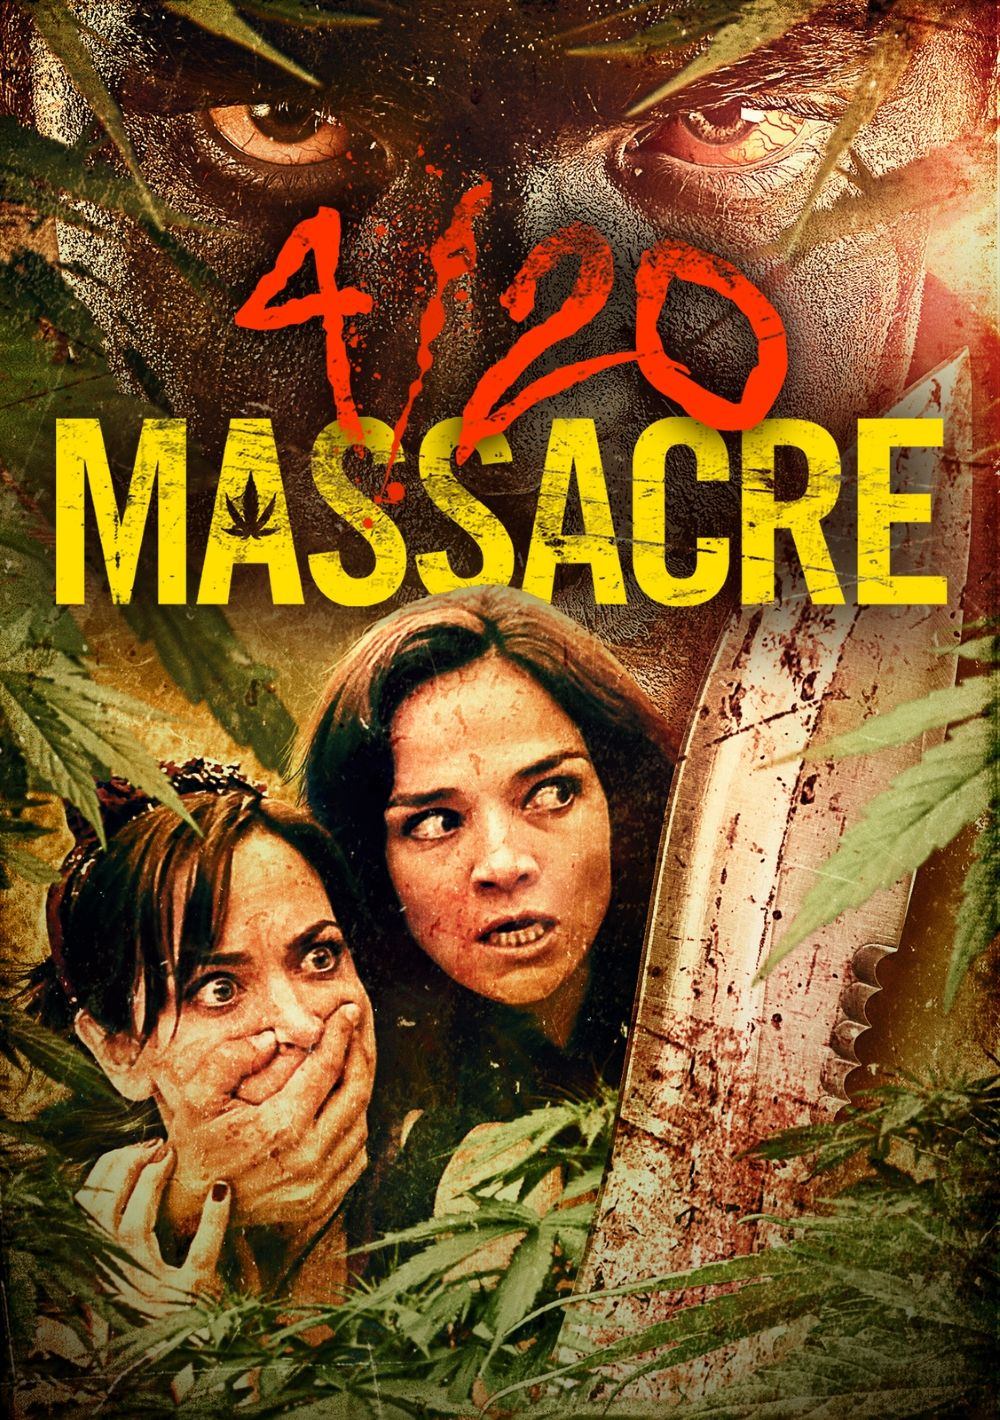 Download 4/20 Massacre Full-Movie Free